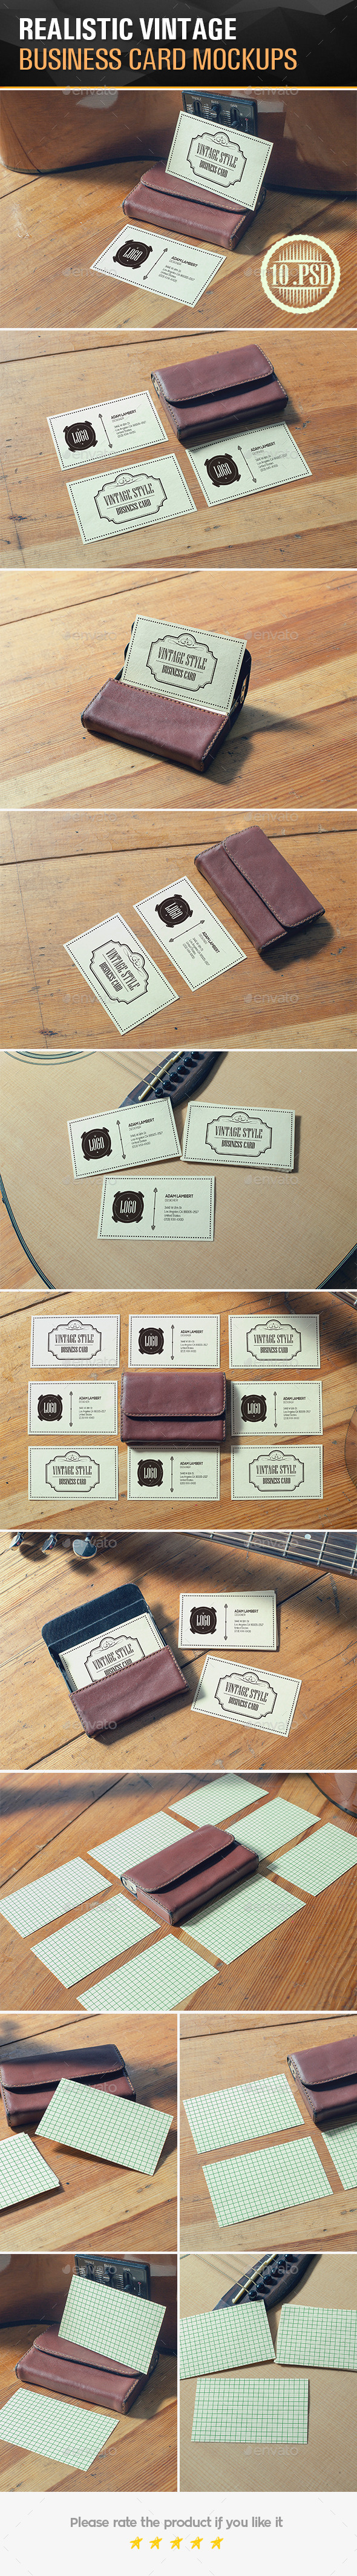 Realistic Vintage Business Card Mockups  - Business Cards Print